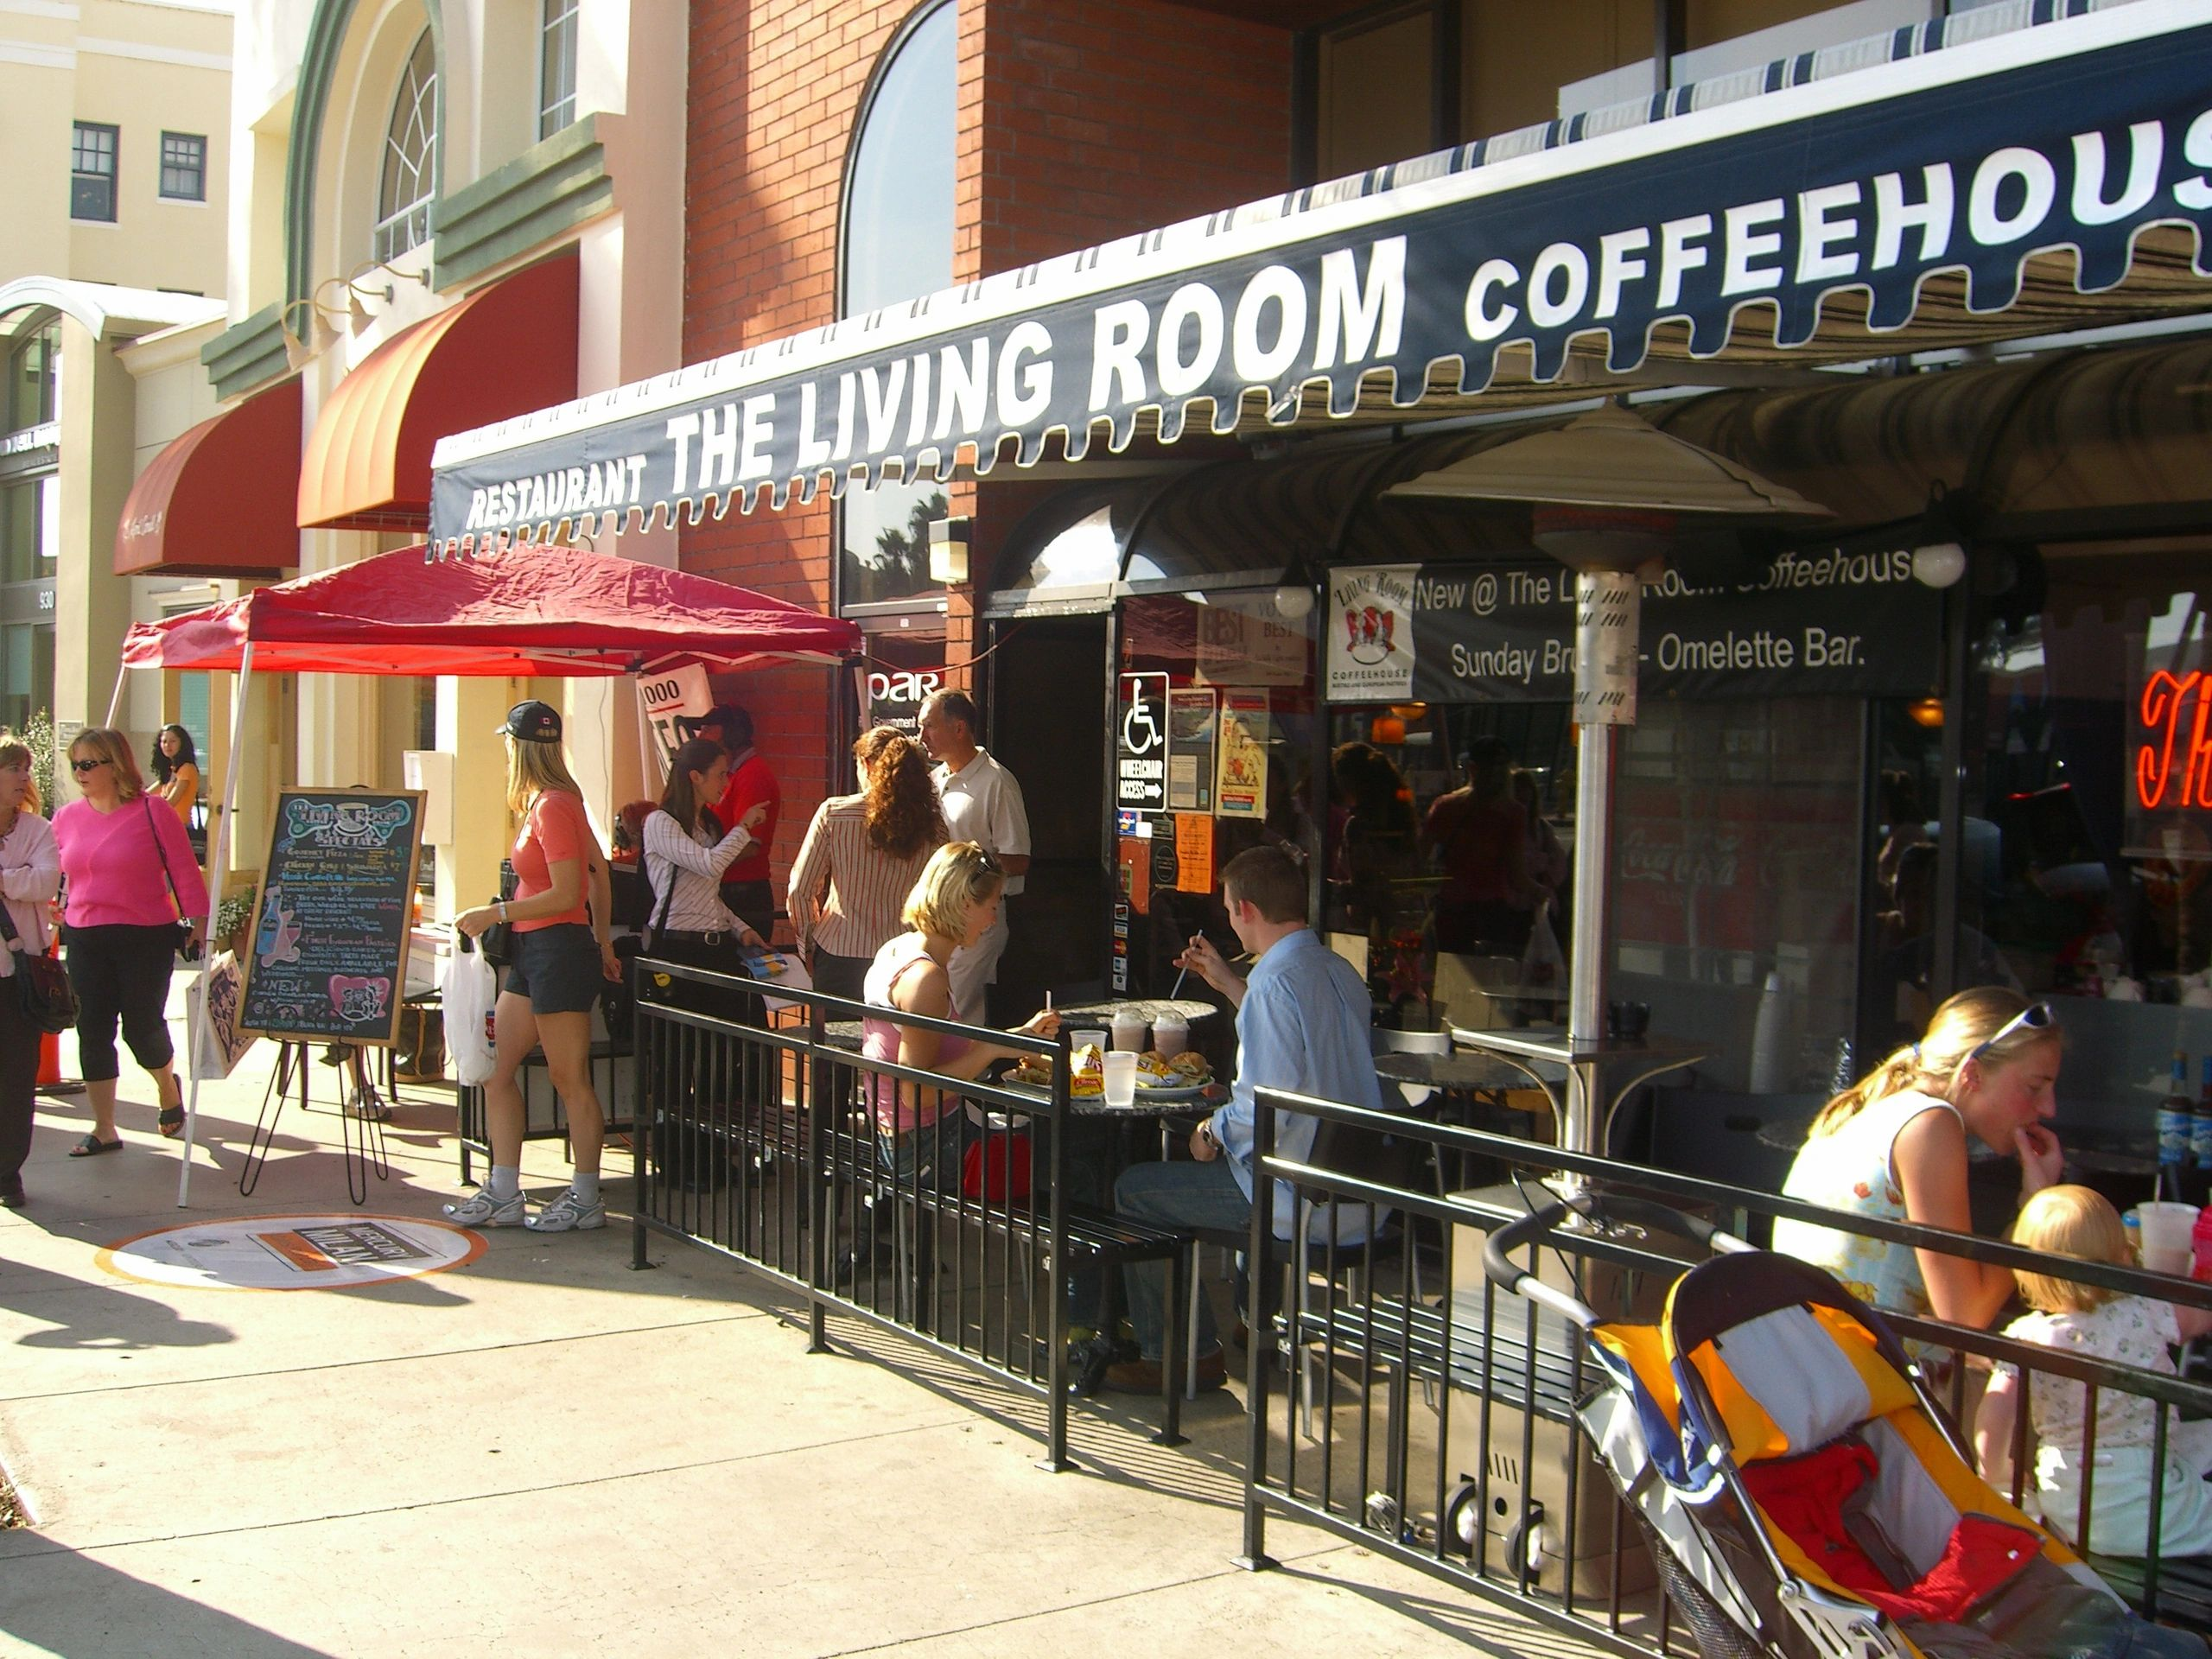 The Living Room Coffeehouse Home